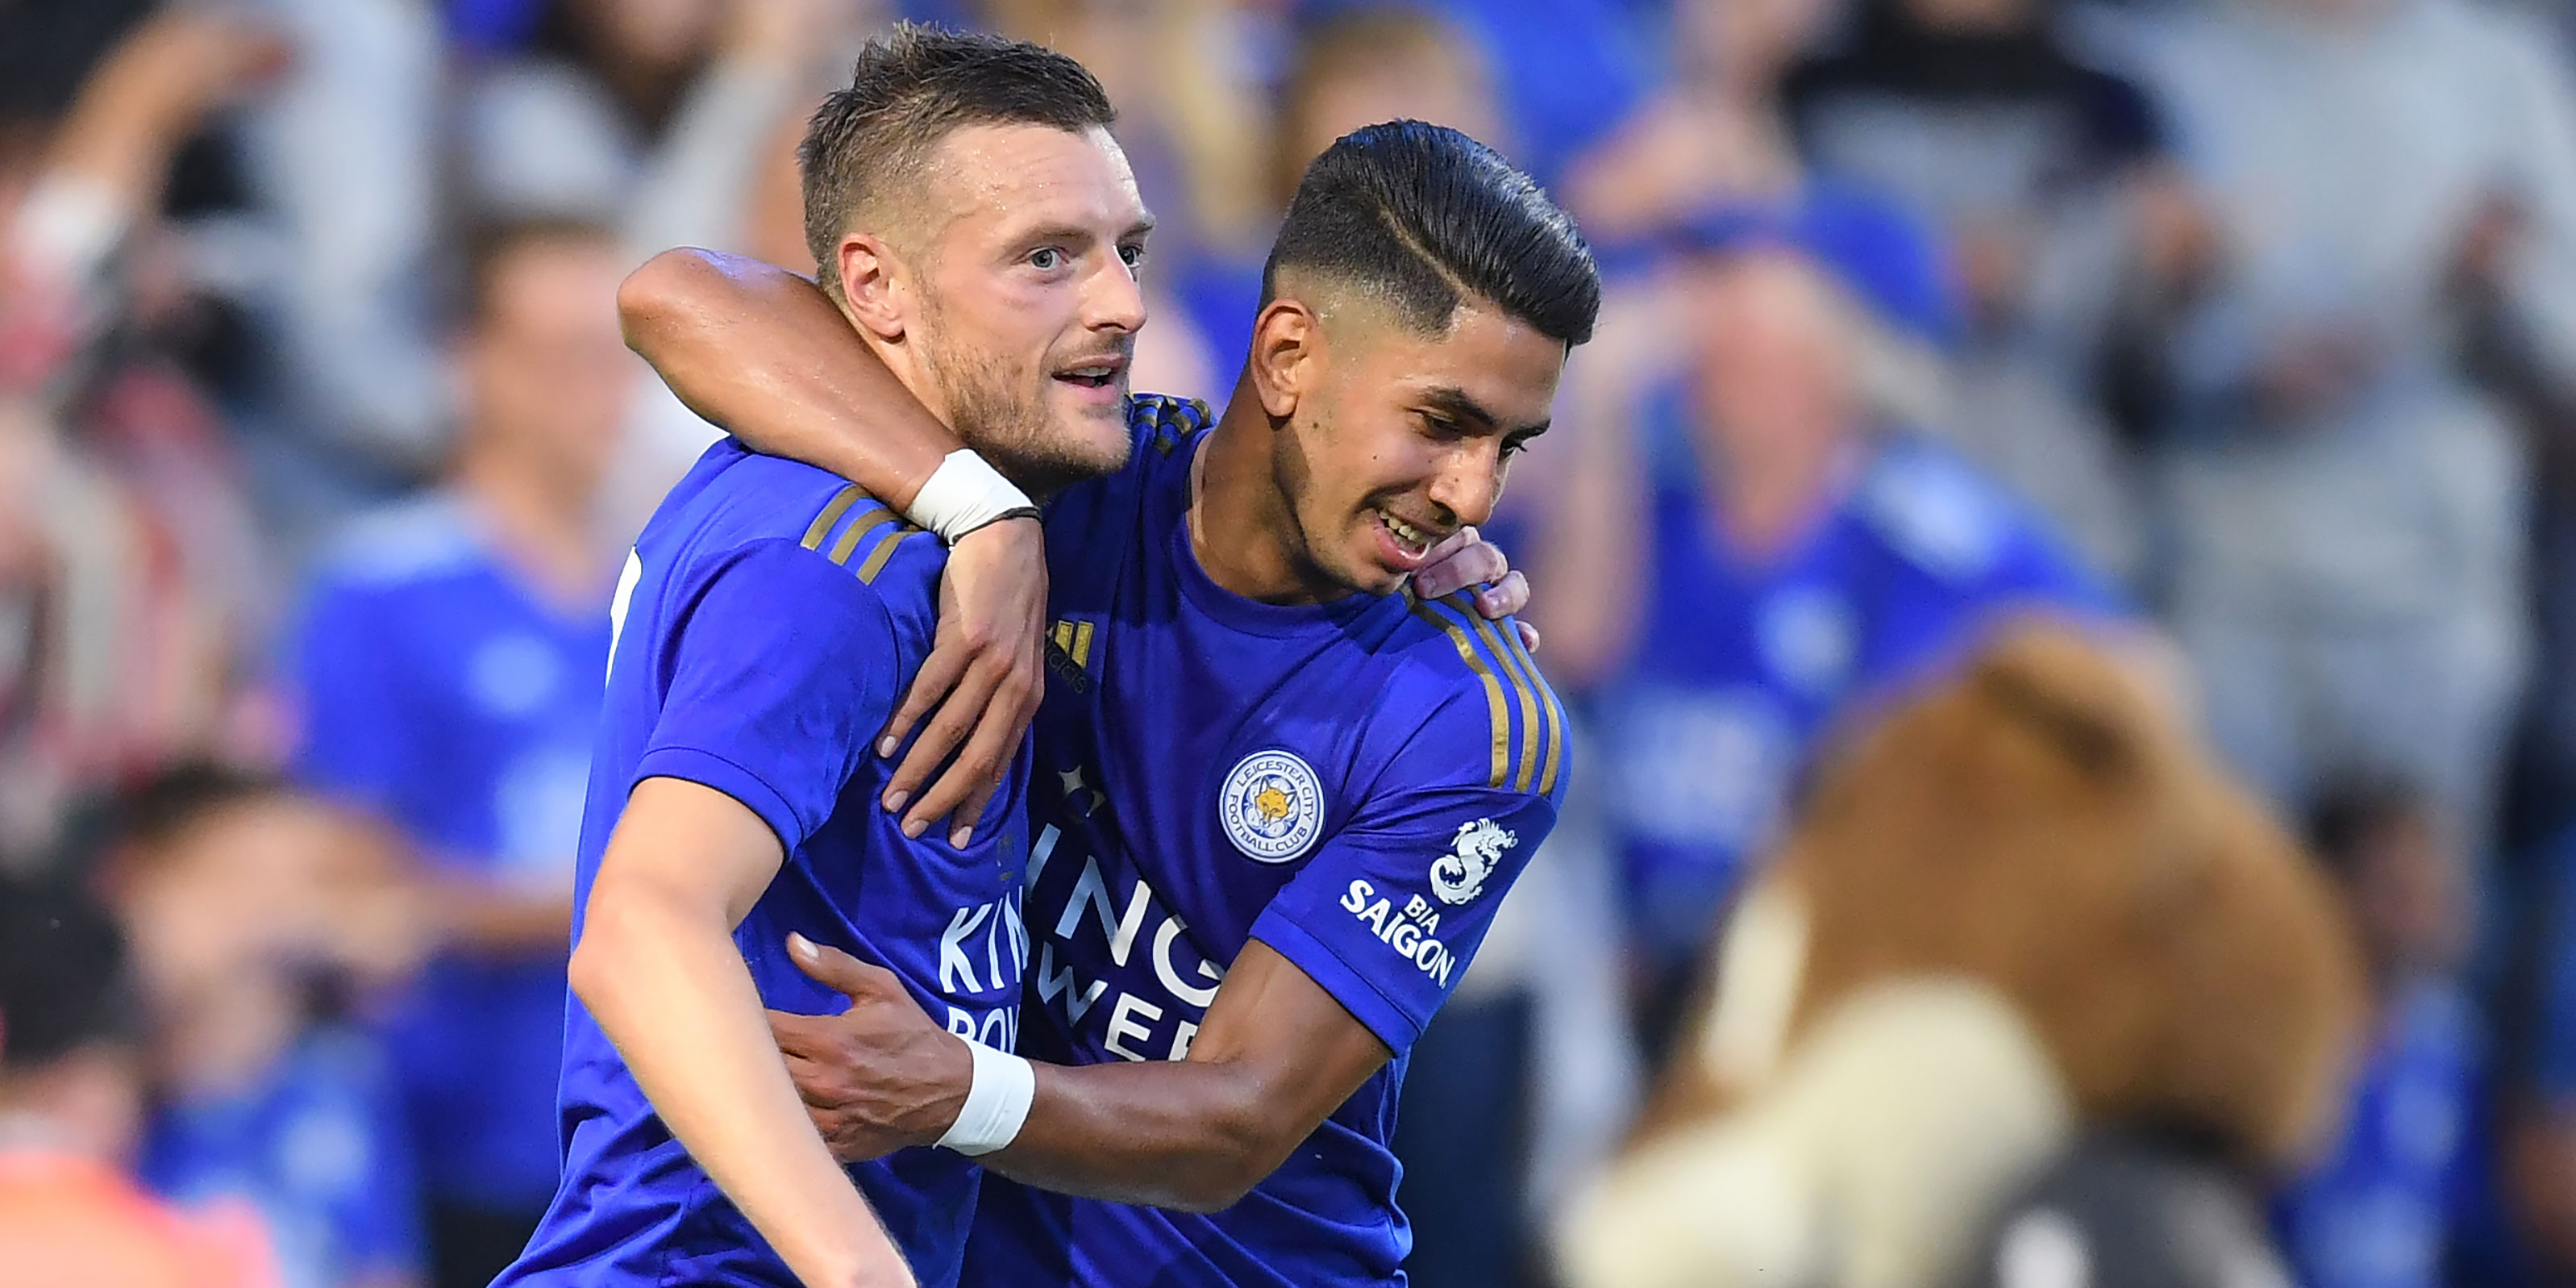 Leicester City players Jamie Vardy and Ayoze Perez